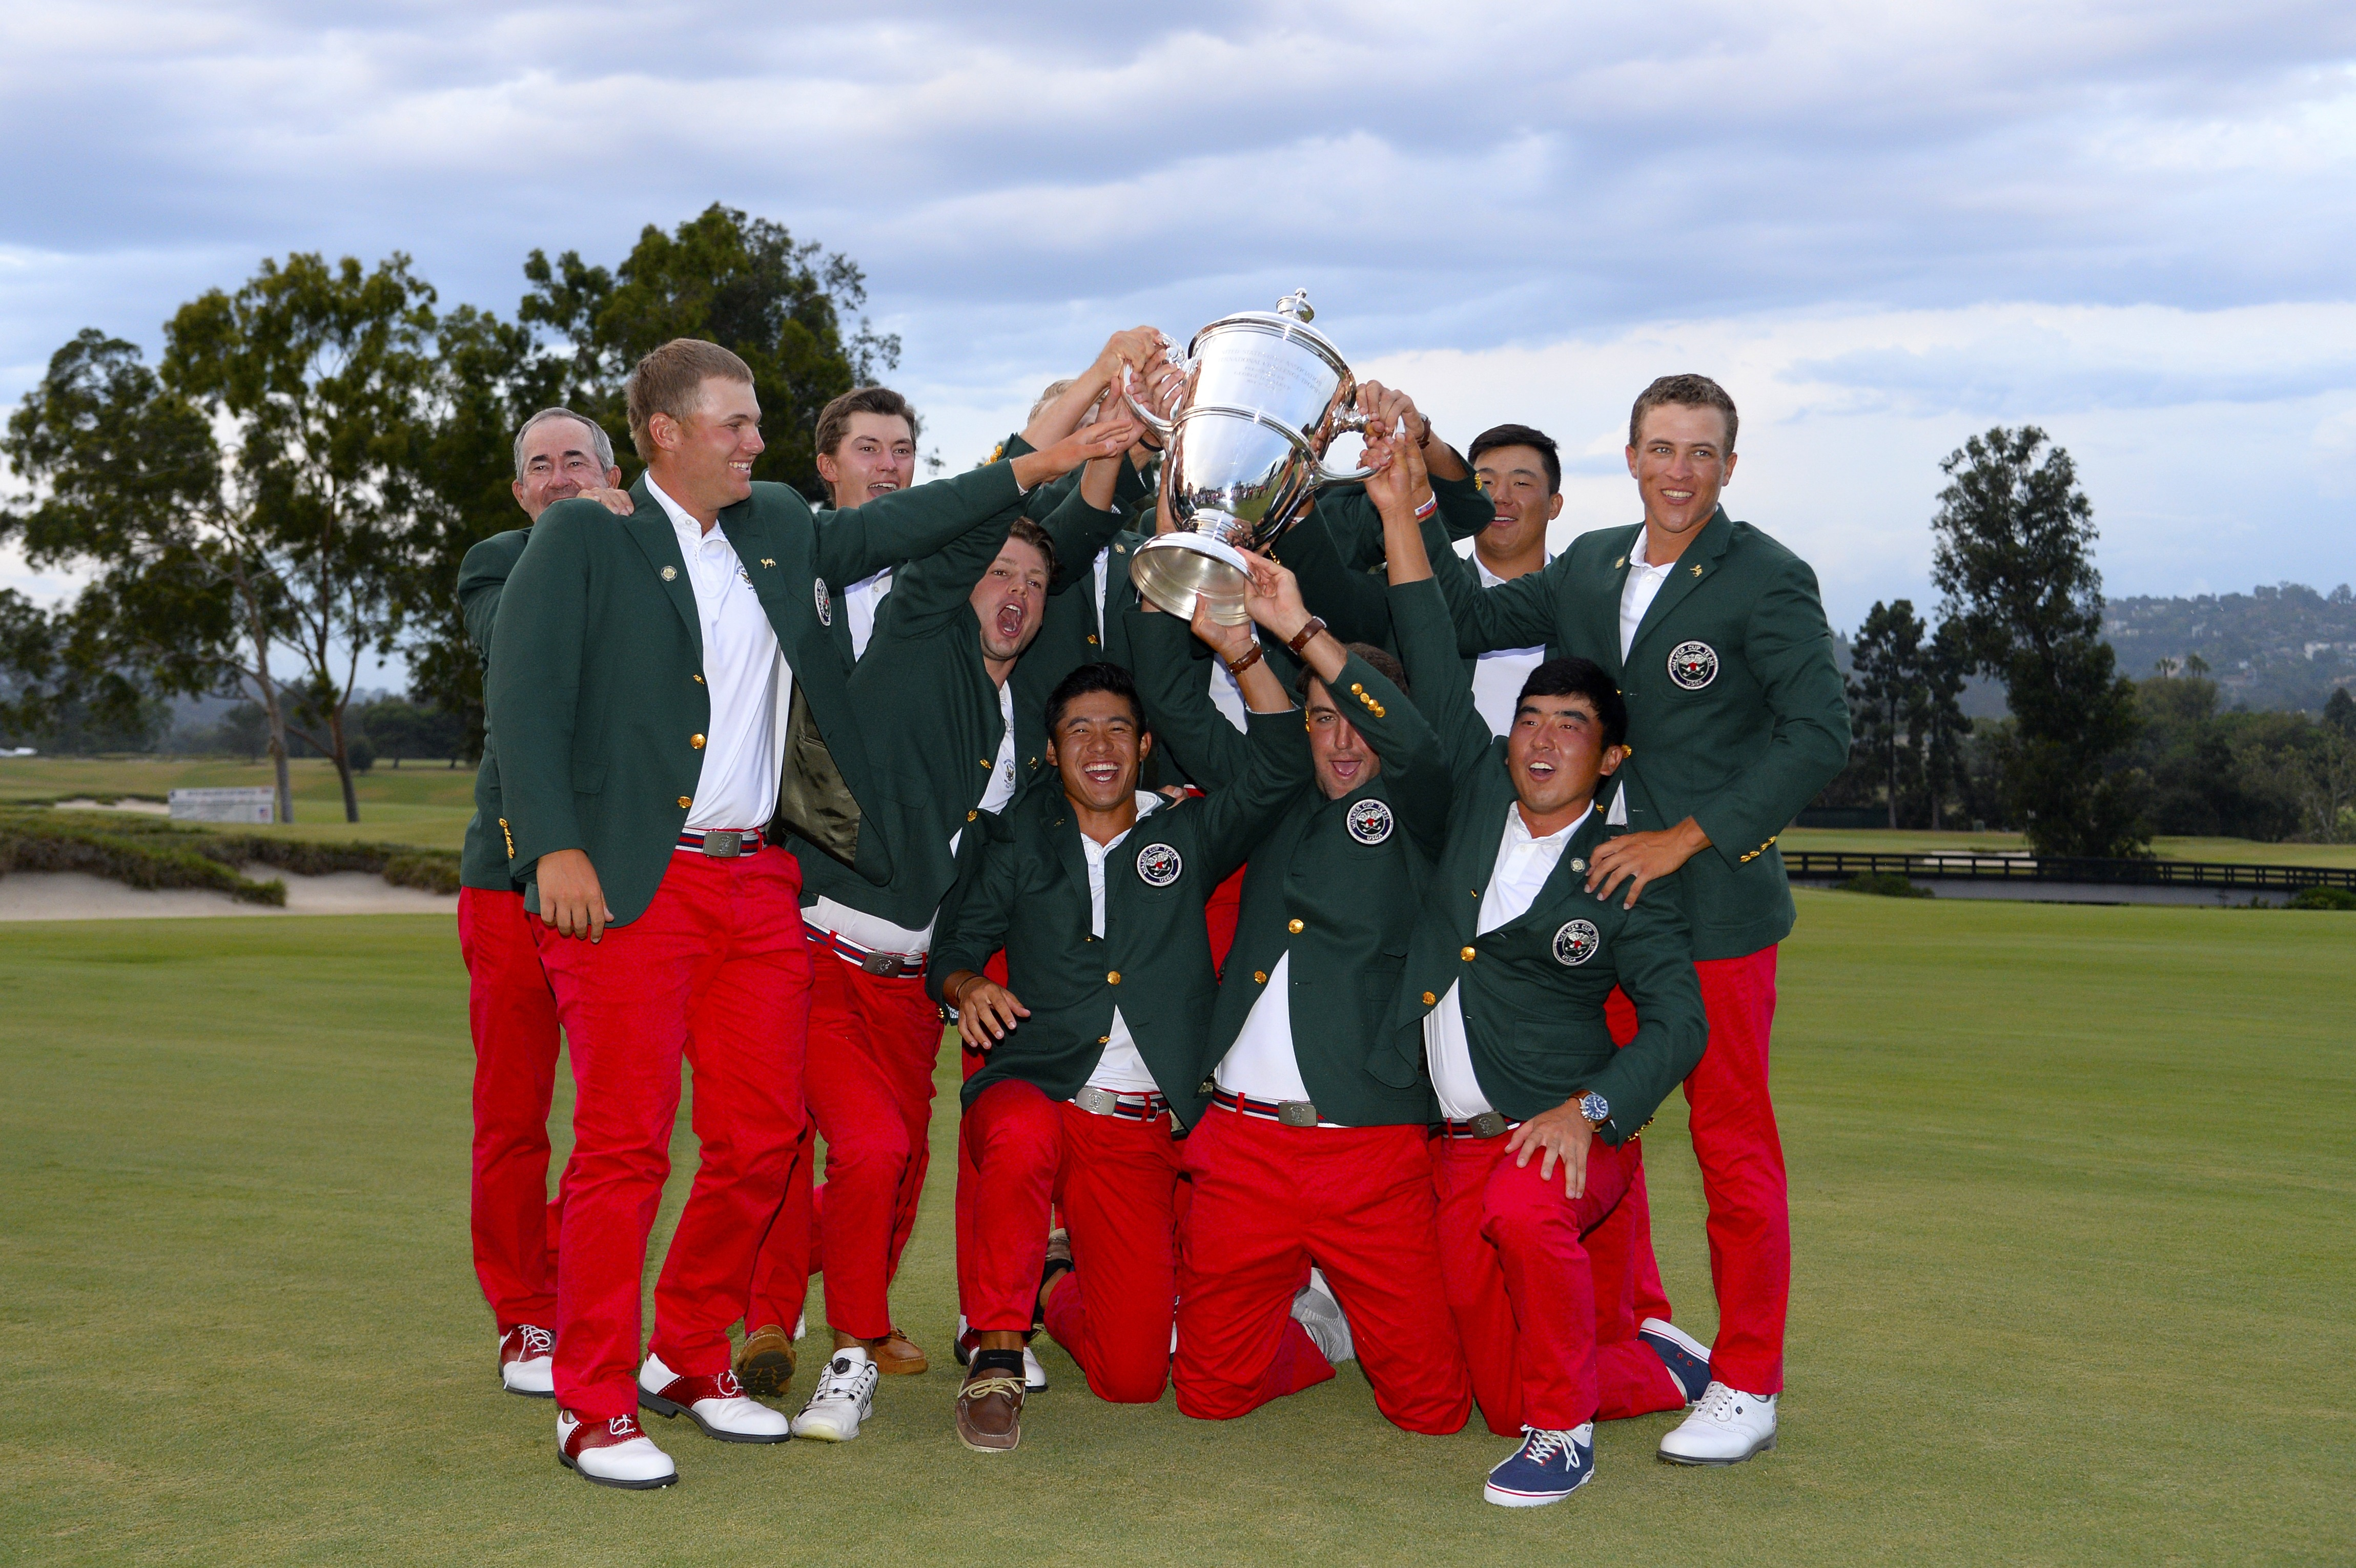 United States, 2017 Walker Cup